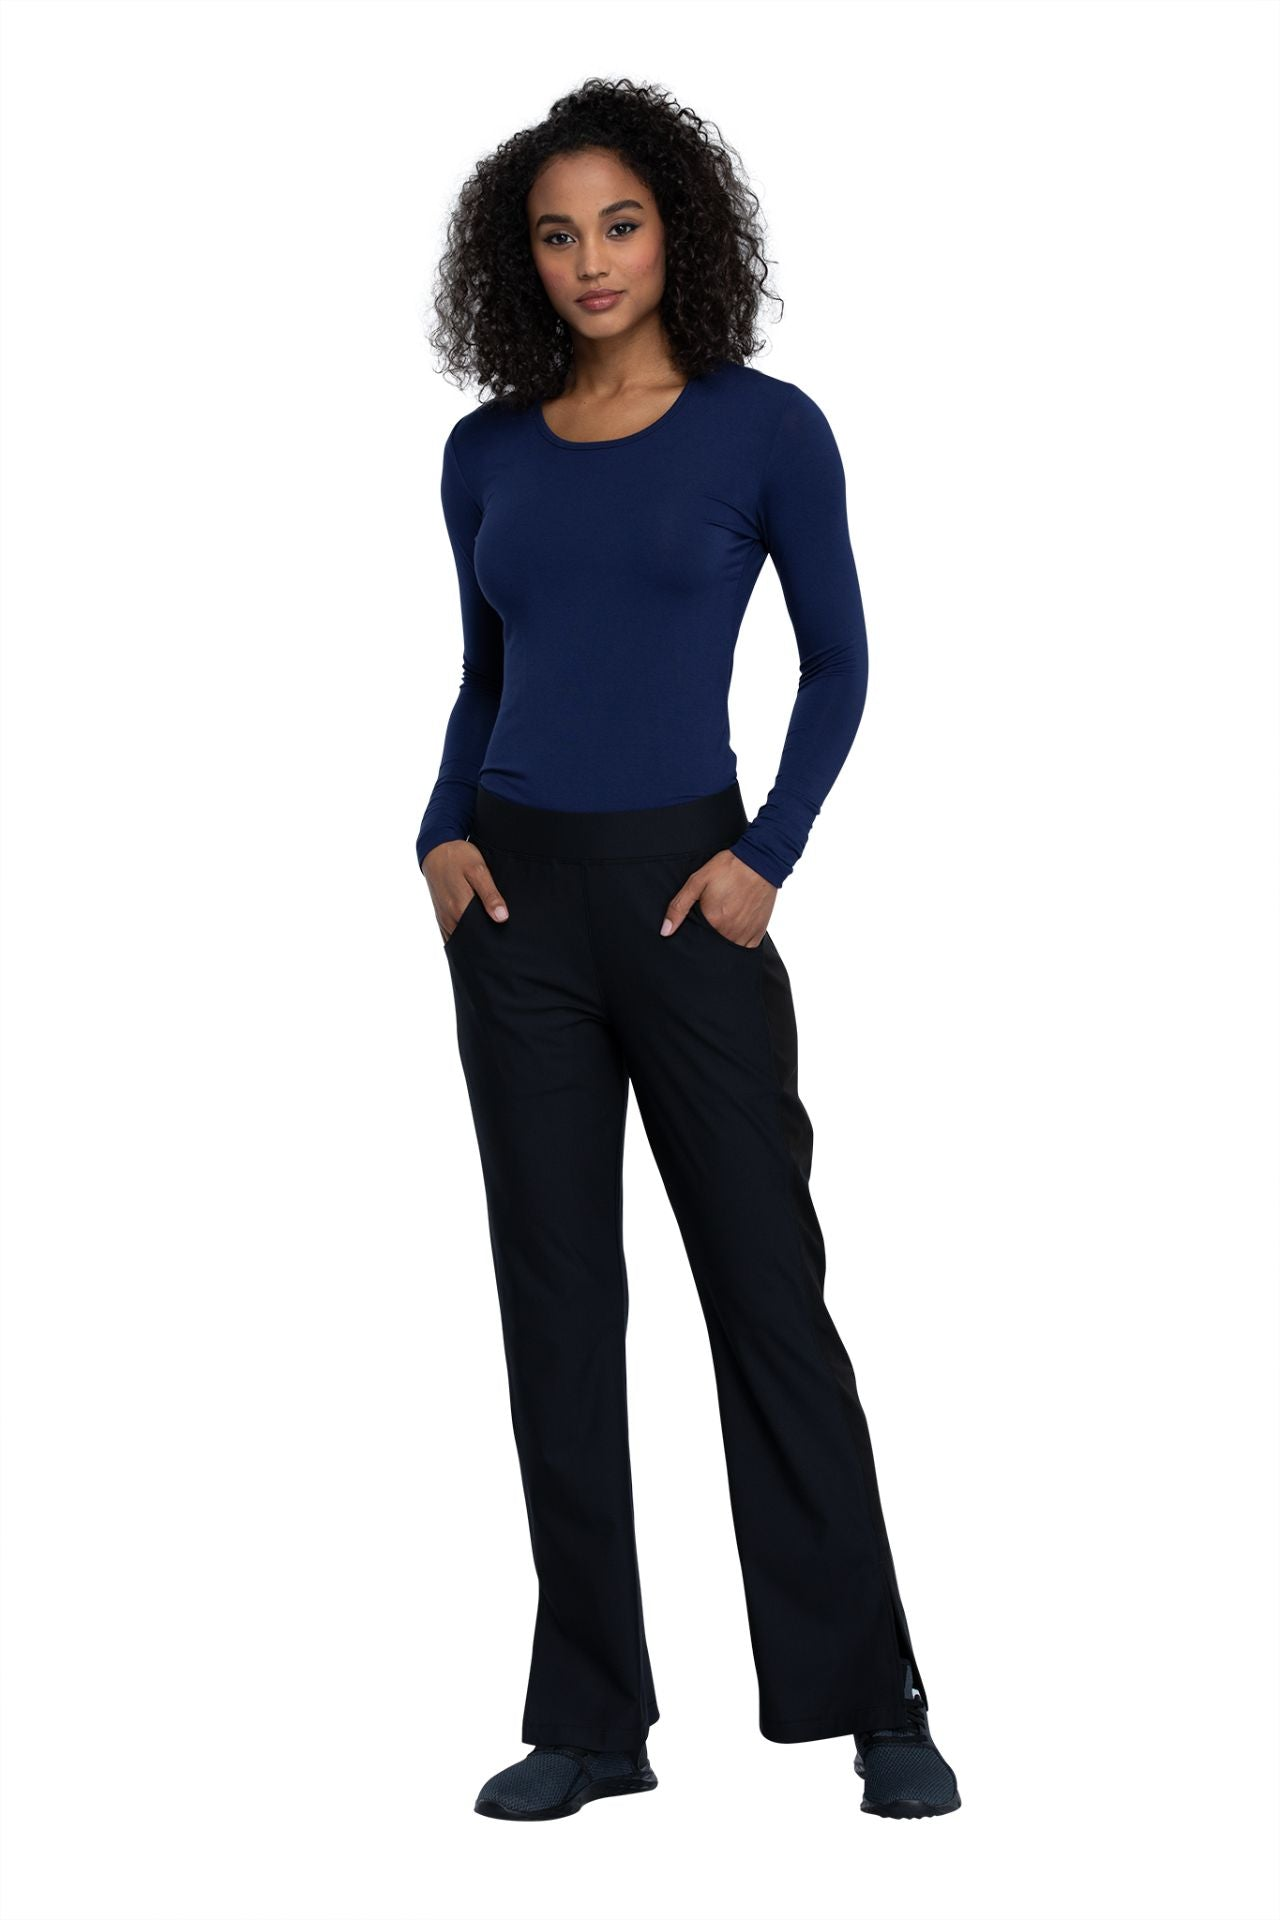 Cherokee Form CK091 Tall Mid-Rise Pull-On Pant